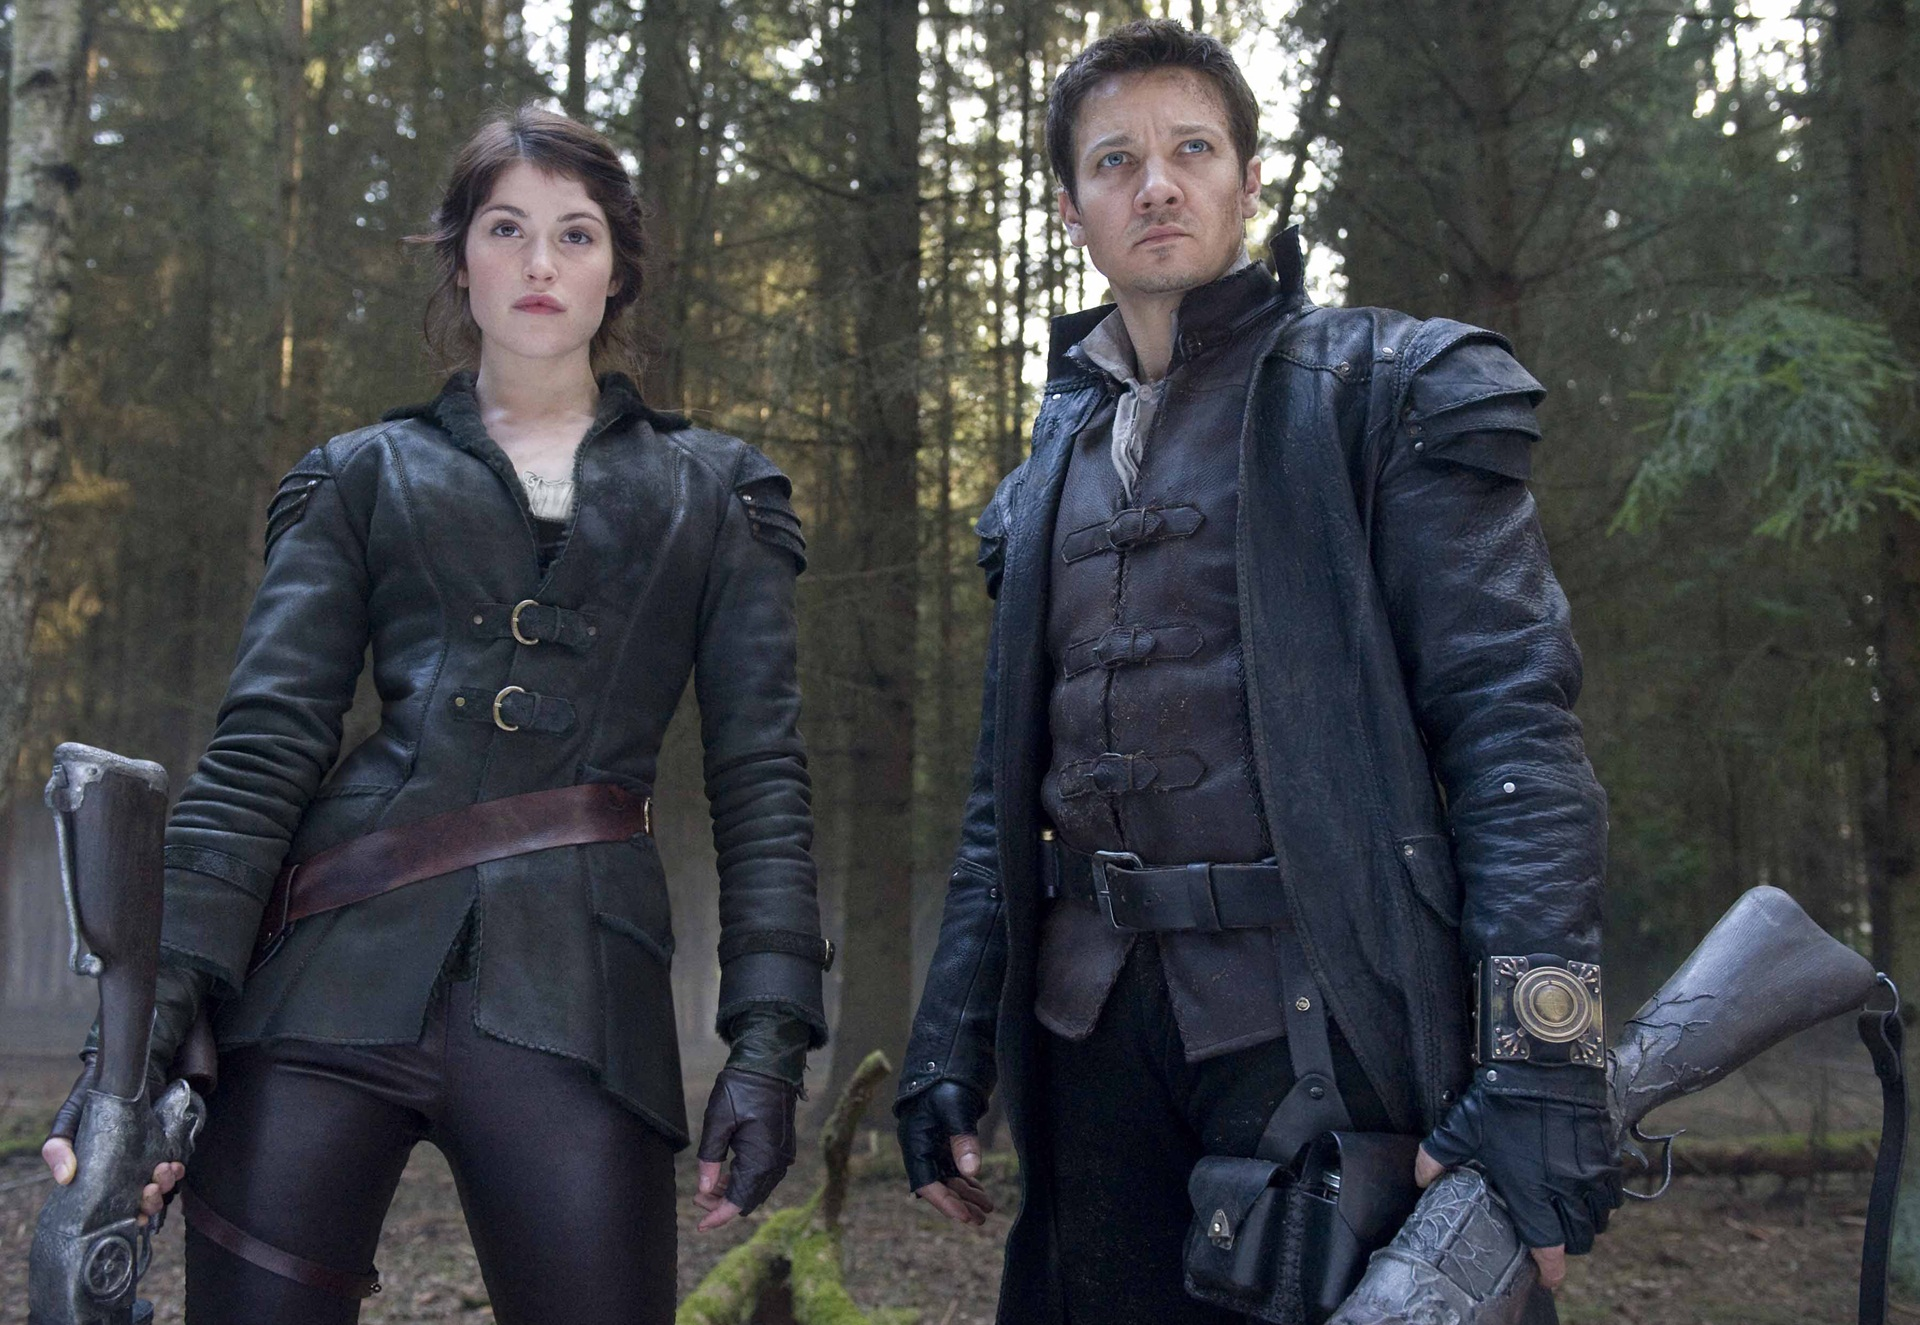 Jeremy-Renner-Gemma-Arterton-Hansel-and-Gretel-Witch-Hunters.jpg